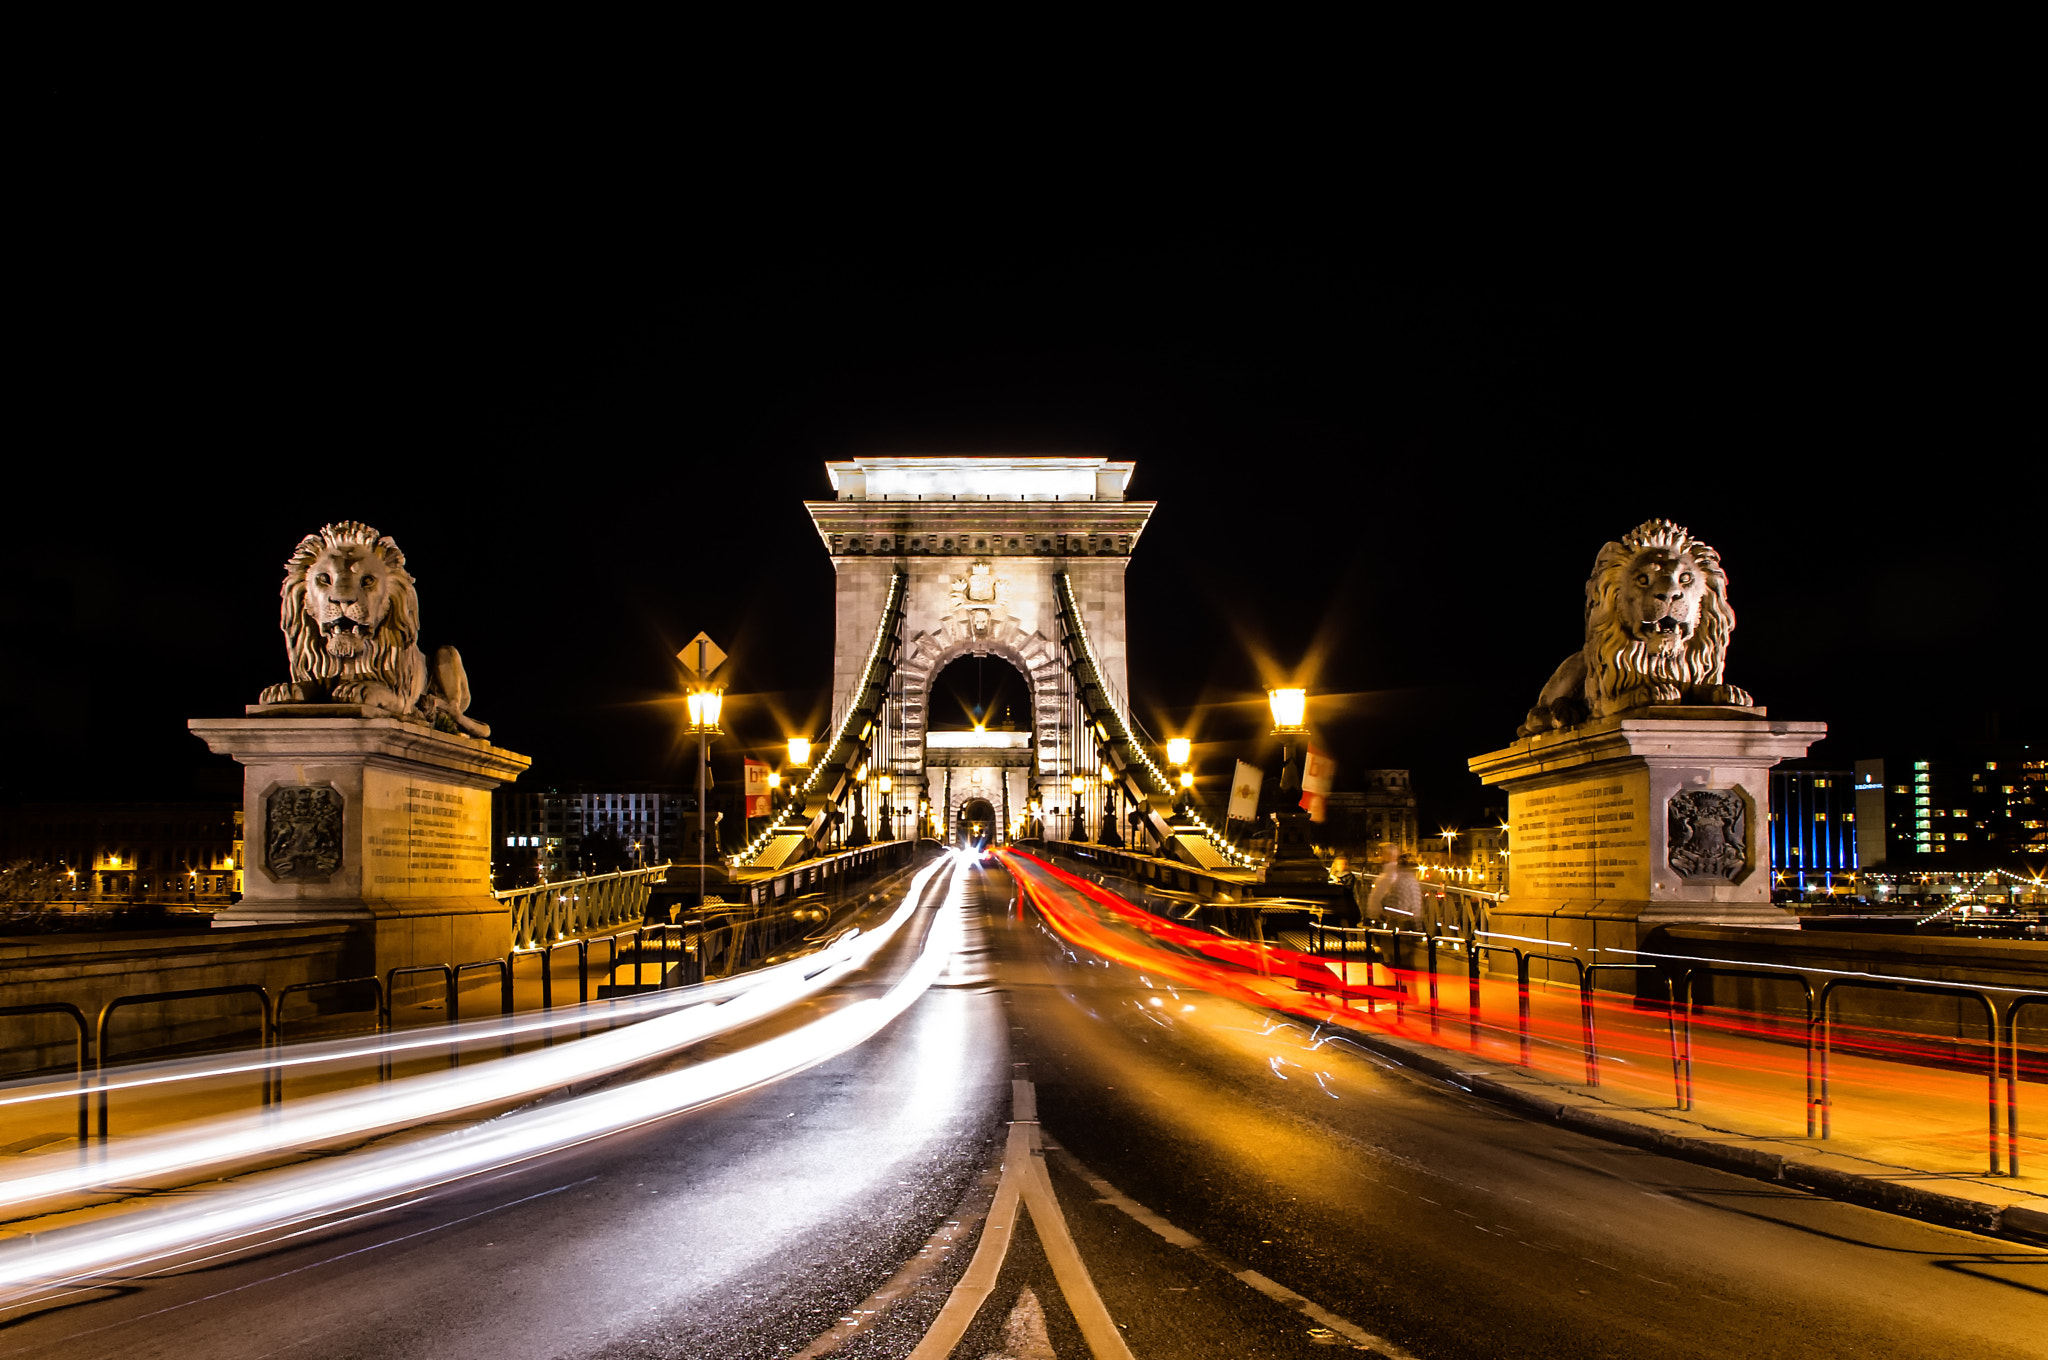 Photograph Chain Bridge by Jason Drury on 500px